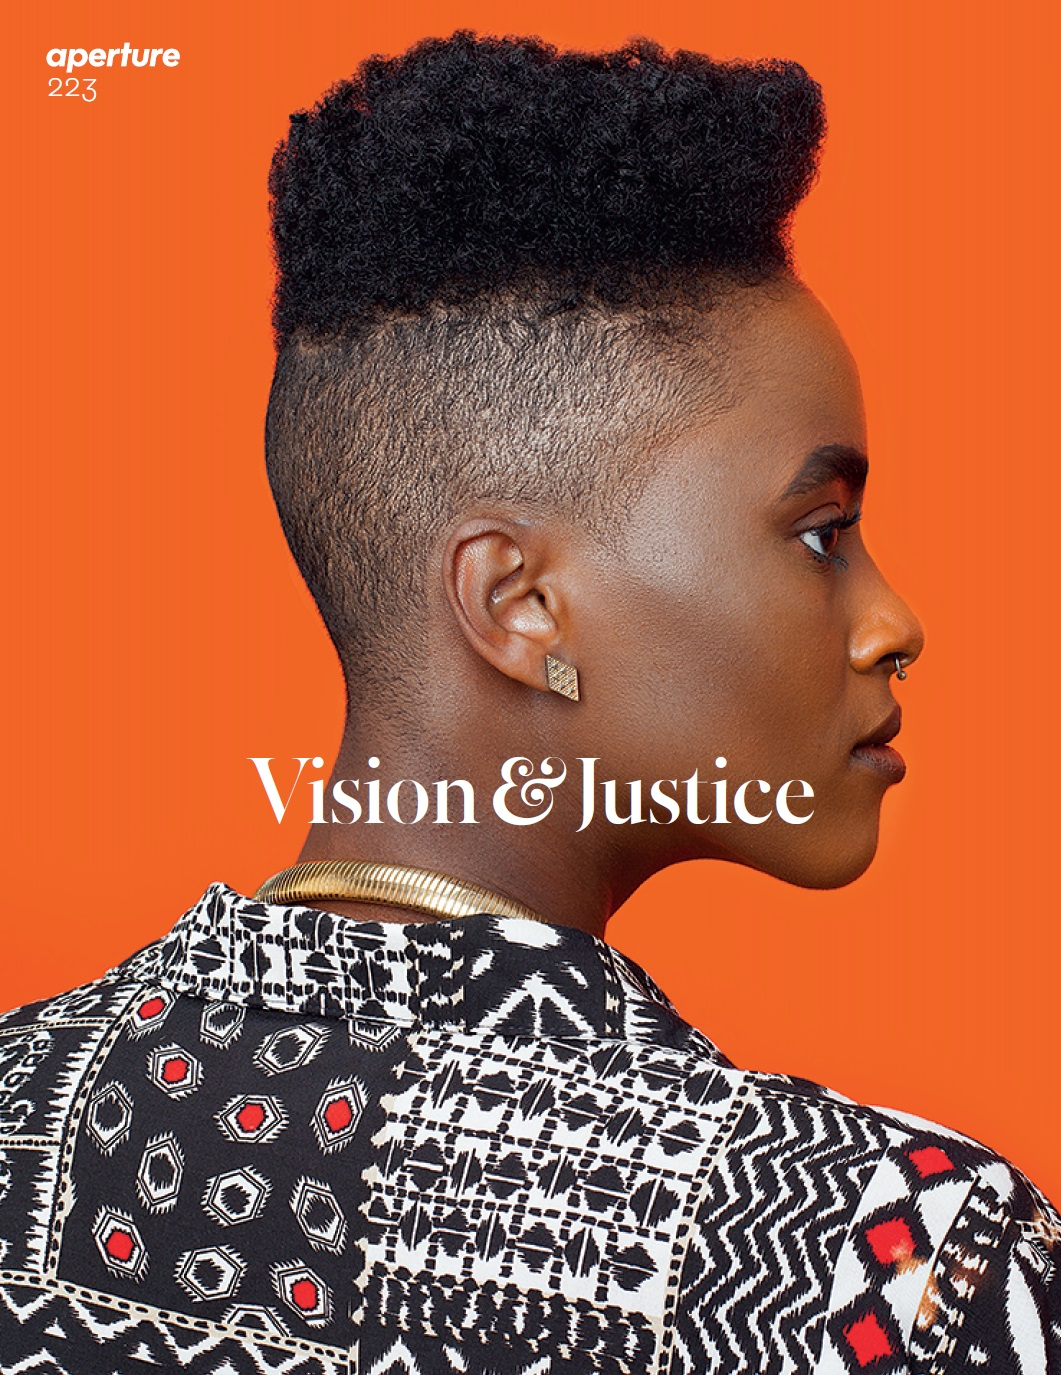 Cover of Aperture #223, Summer 2016, Vision & Justice. Photograph by Awol Erizku.